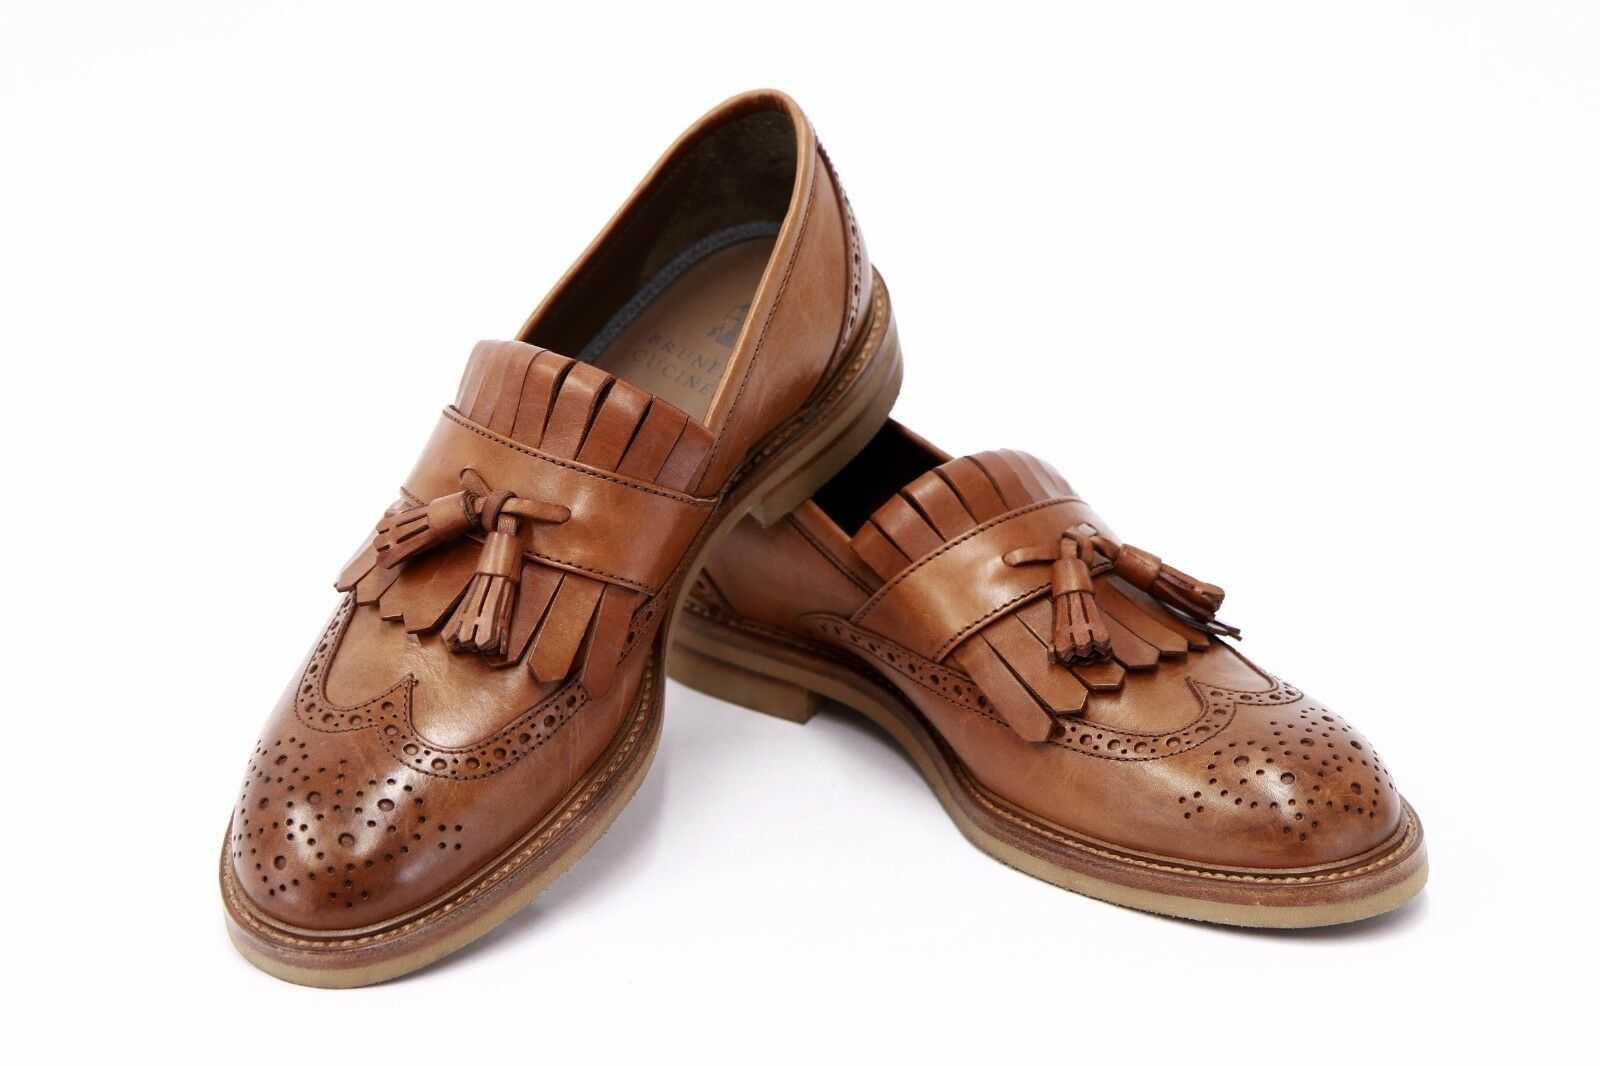 NWOB 1125 Brunello Cucinelli Uomo Pelle Perforated Wingtip Brogue Tassel Loafer